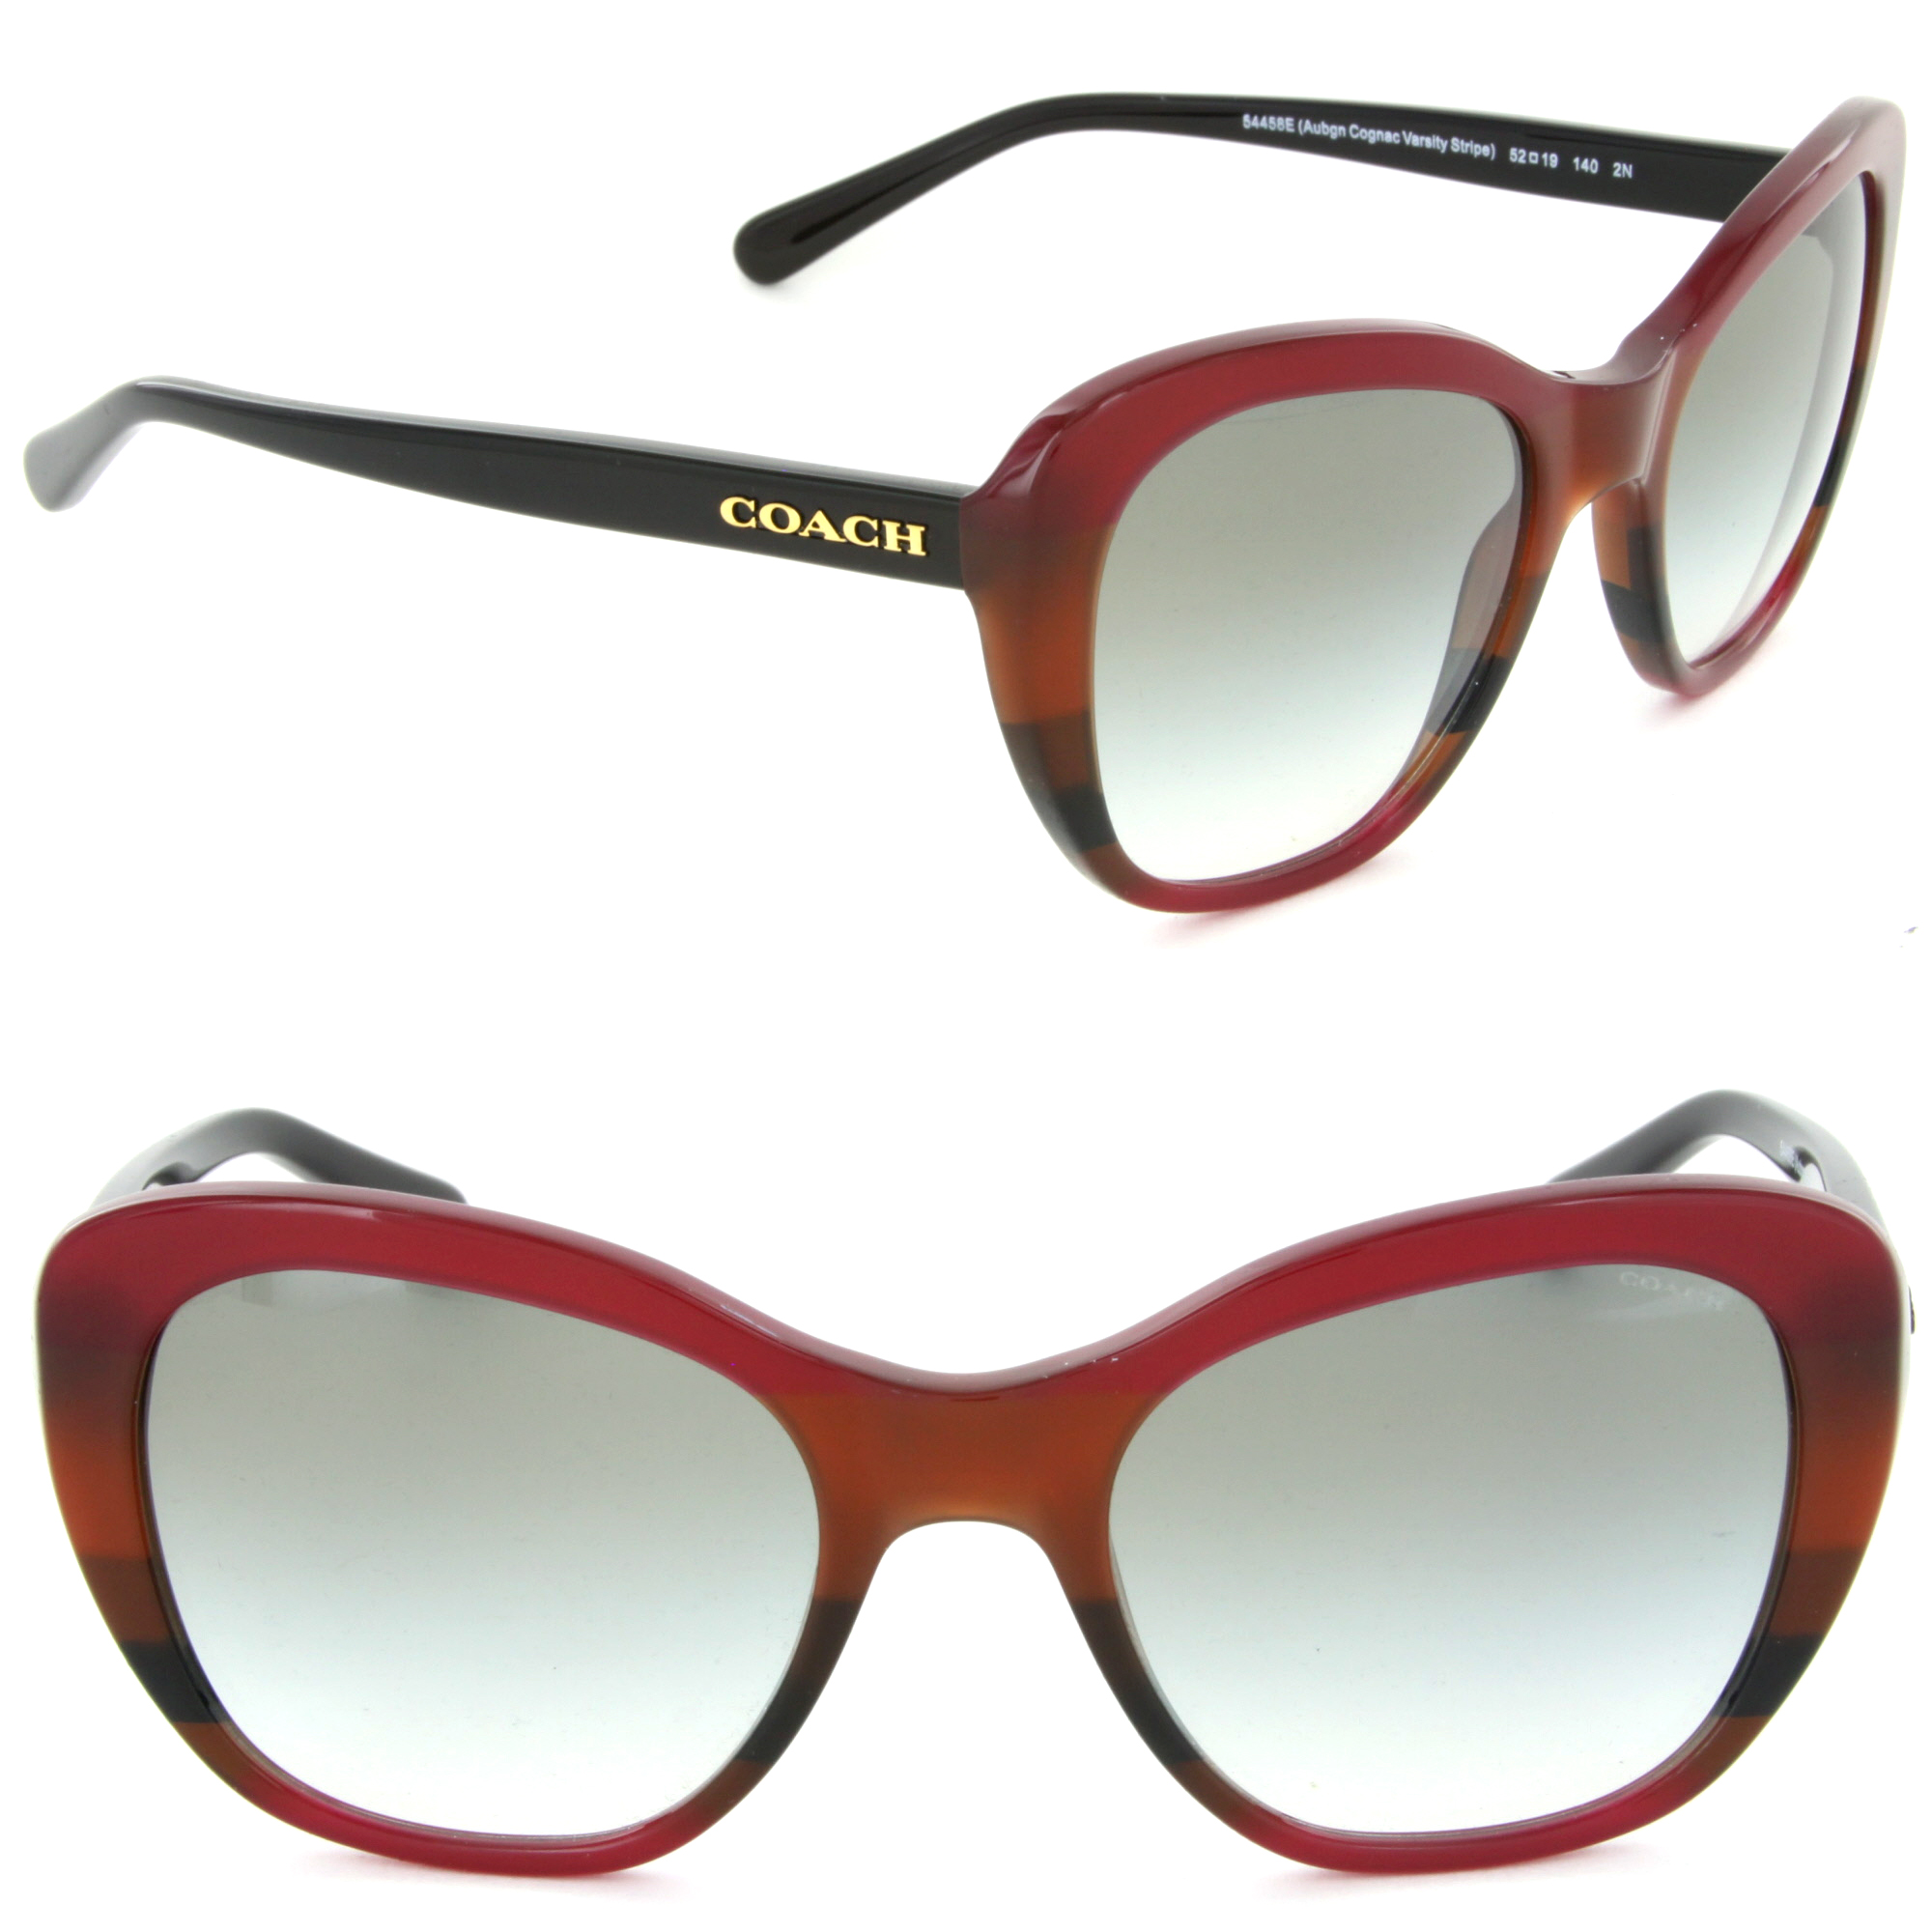 553f2c9c9c187 ... official store coach hc8204 54458e cat eye sunglasses aubgn cognac  varsity stripe green gradient lens 22360